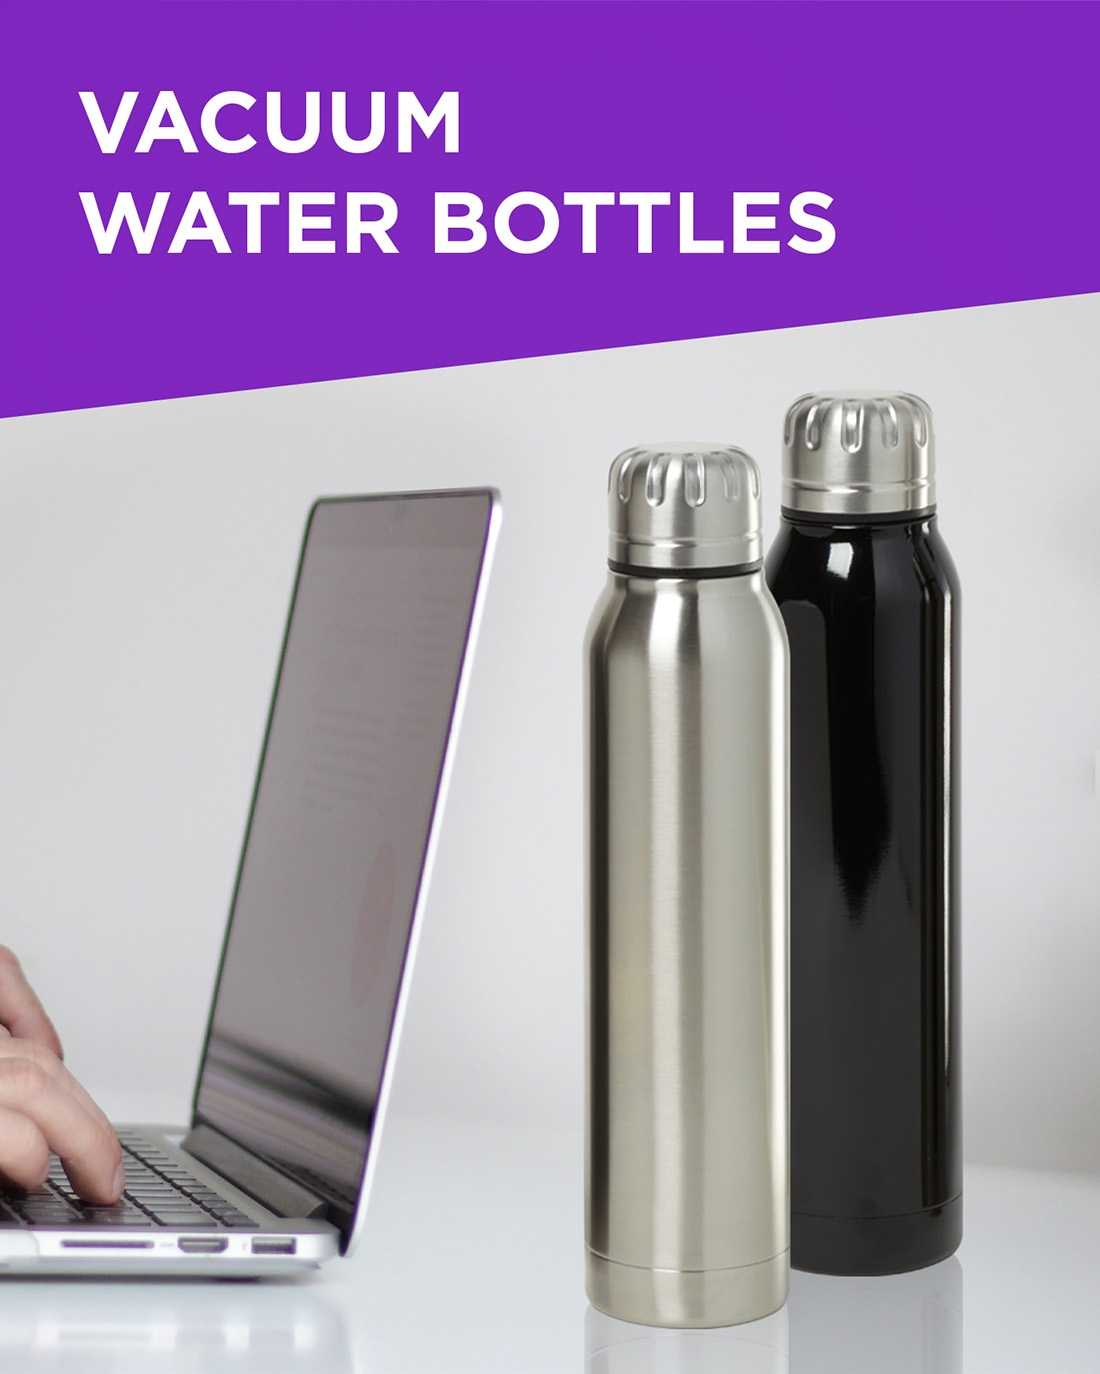 Vacuum Water Bottles AIM